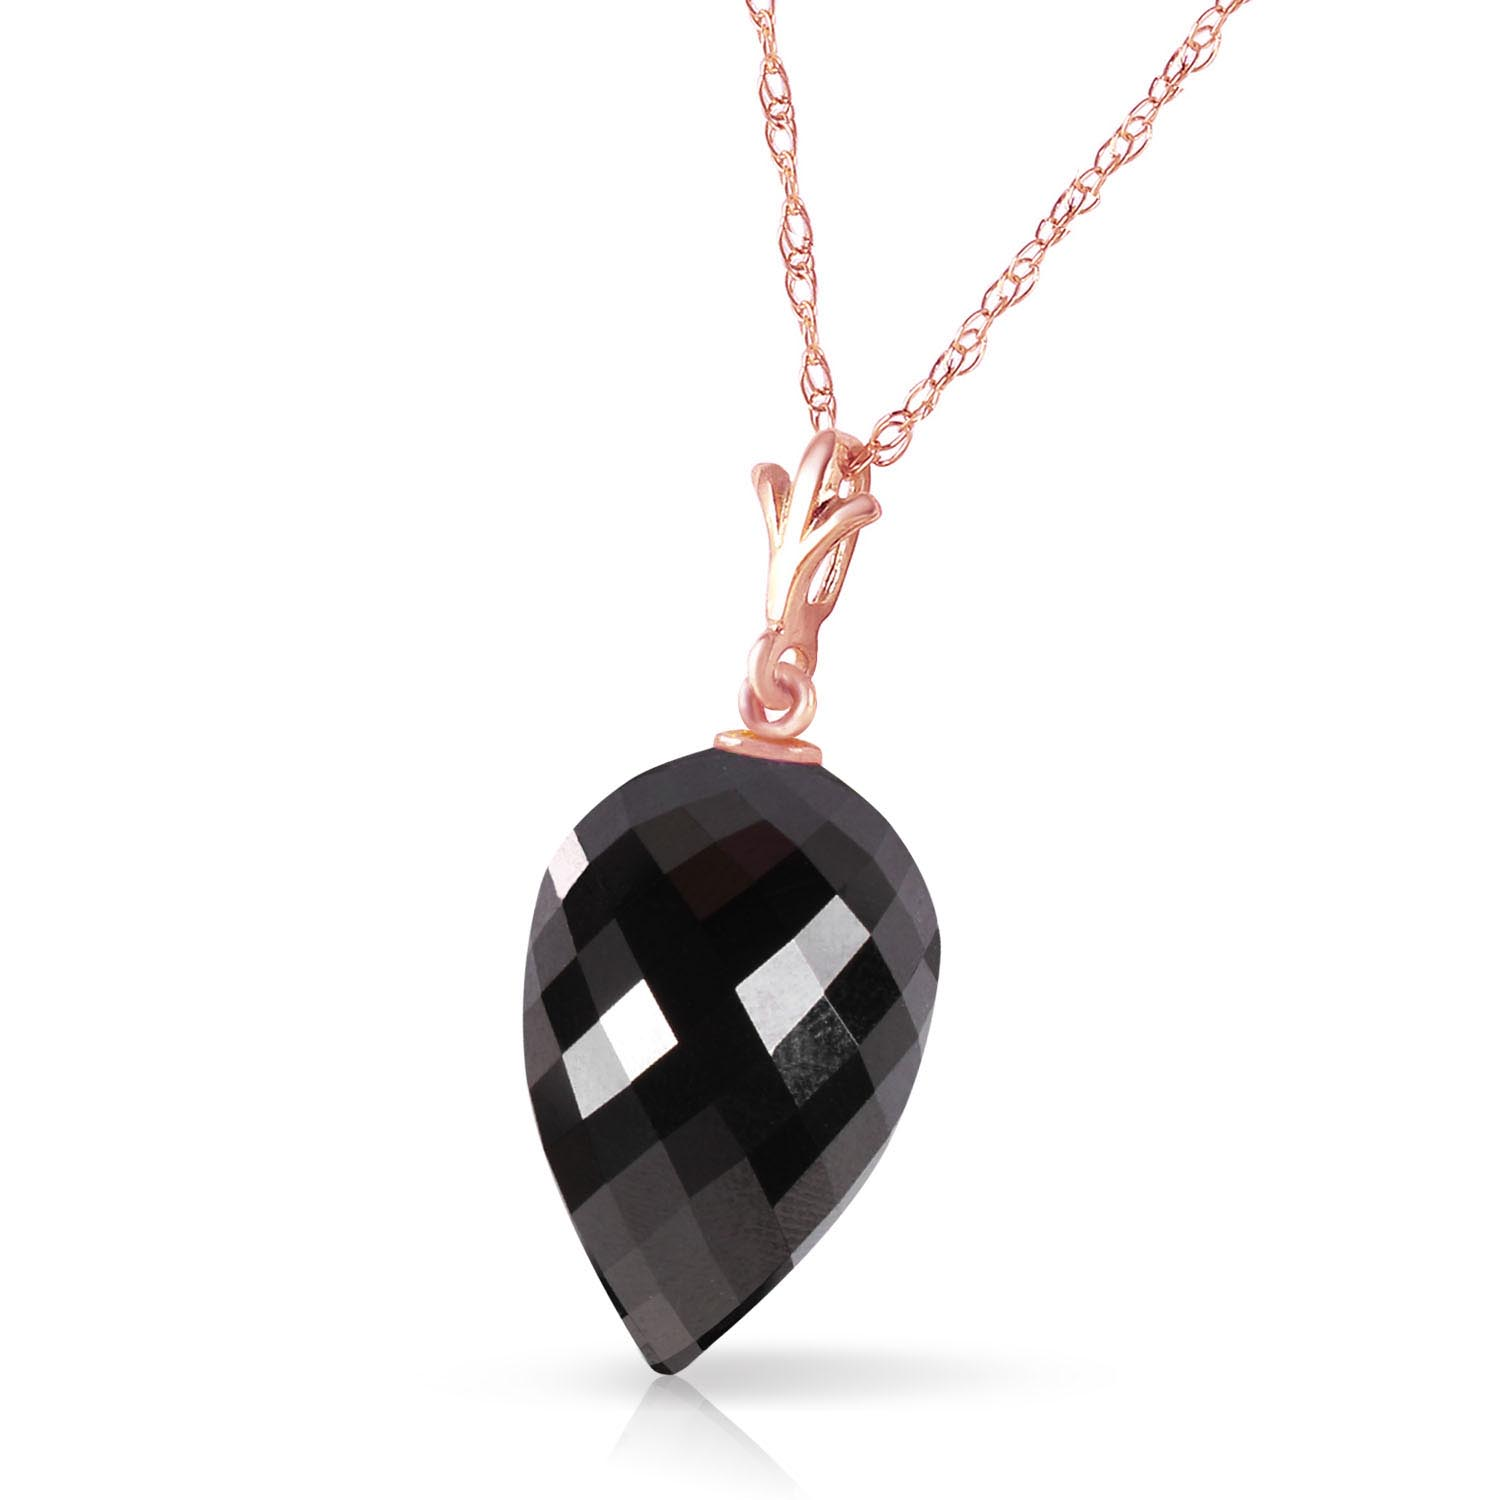 Black Spinel Briolette Pendant Necklace 12.25ct in 14K Rose Gold